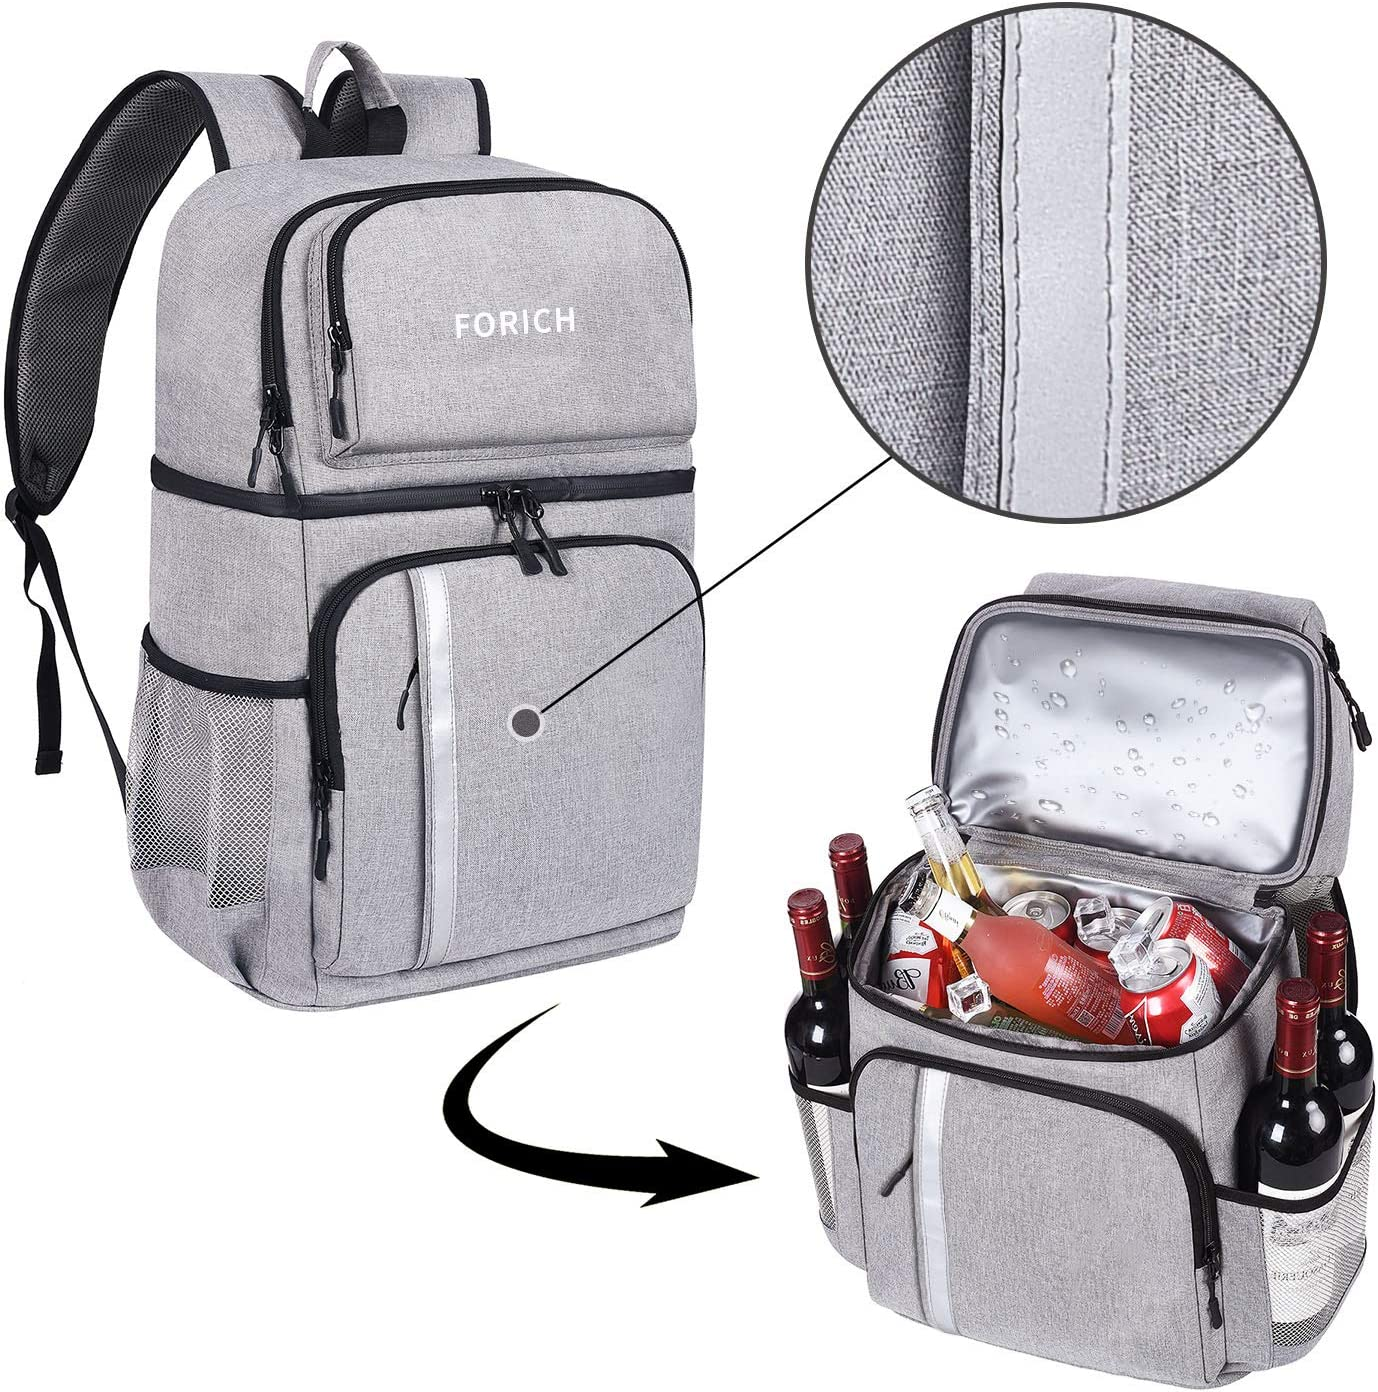 FORICH Insulated Cooler Backpack Double Deck Lightweight Leak Proof Backpack Cooler Bag Soft Lunch Backpack with Cooler Compartment for Men Women to Work Beach Travel Picnics Camping Hiking